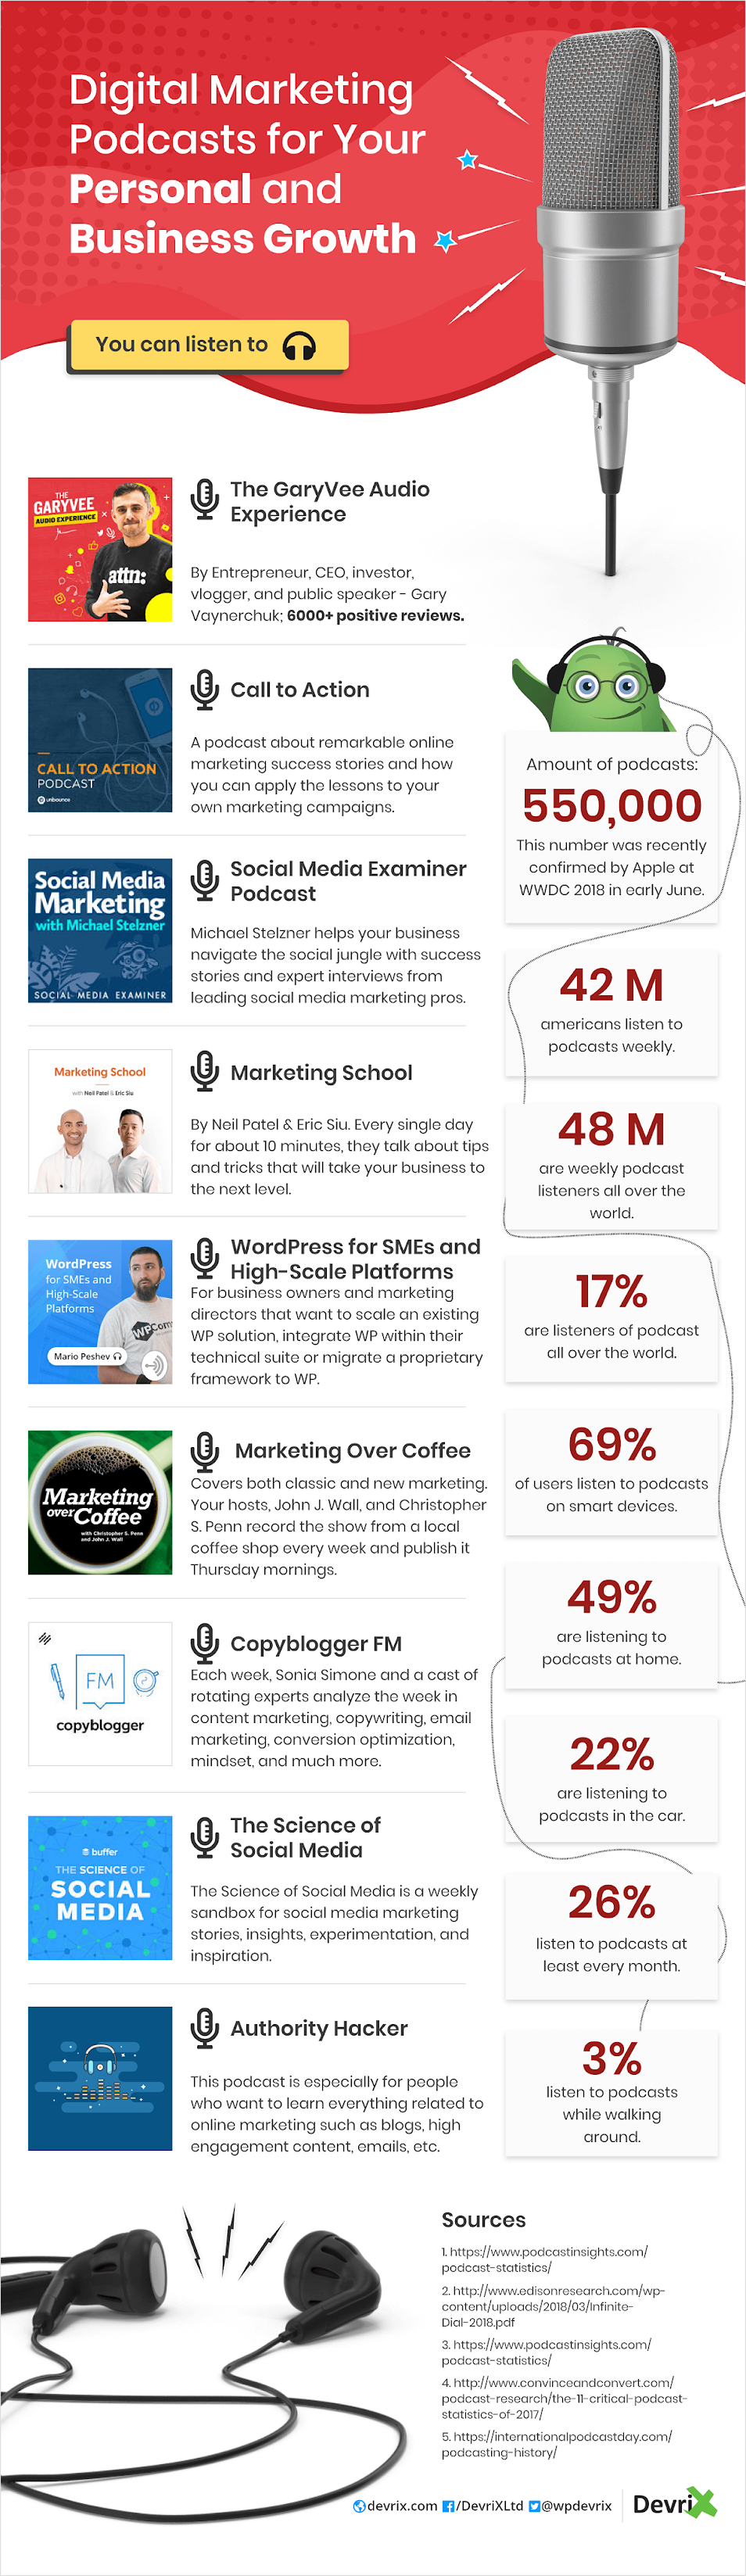 digital-marketing-podcasts-for-your-personal-and-business-growth-infographic